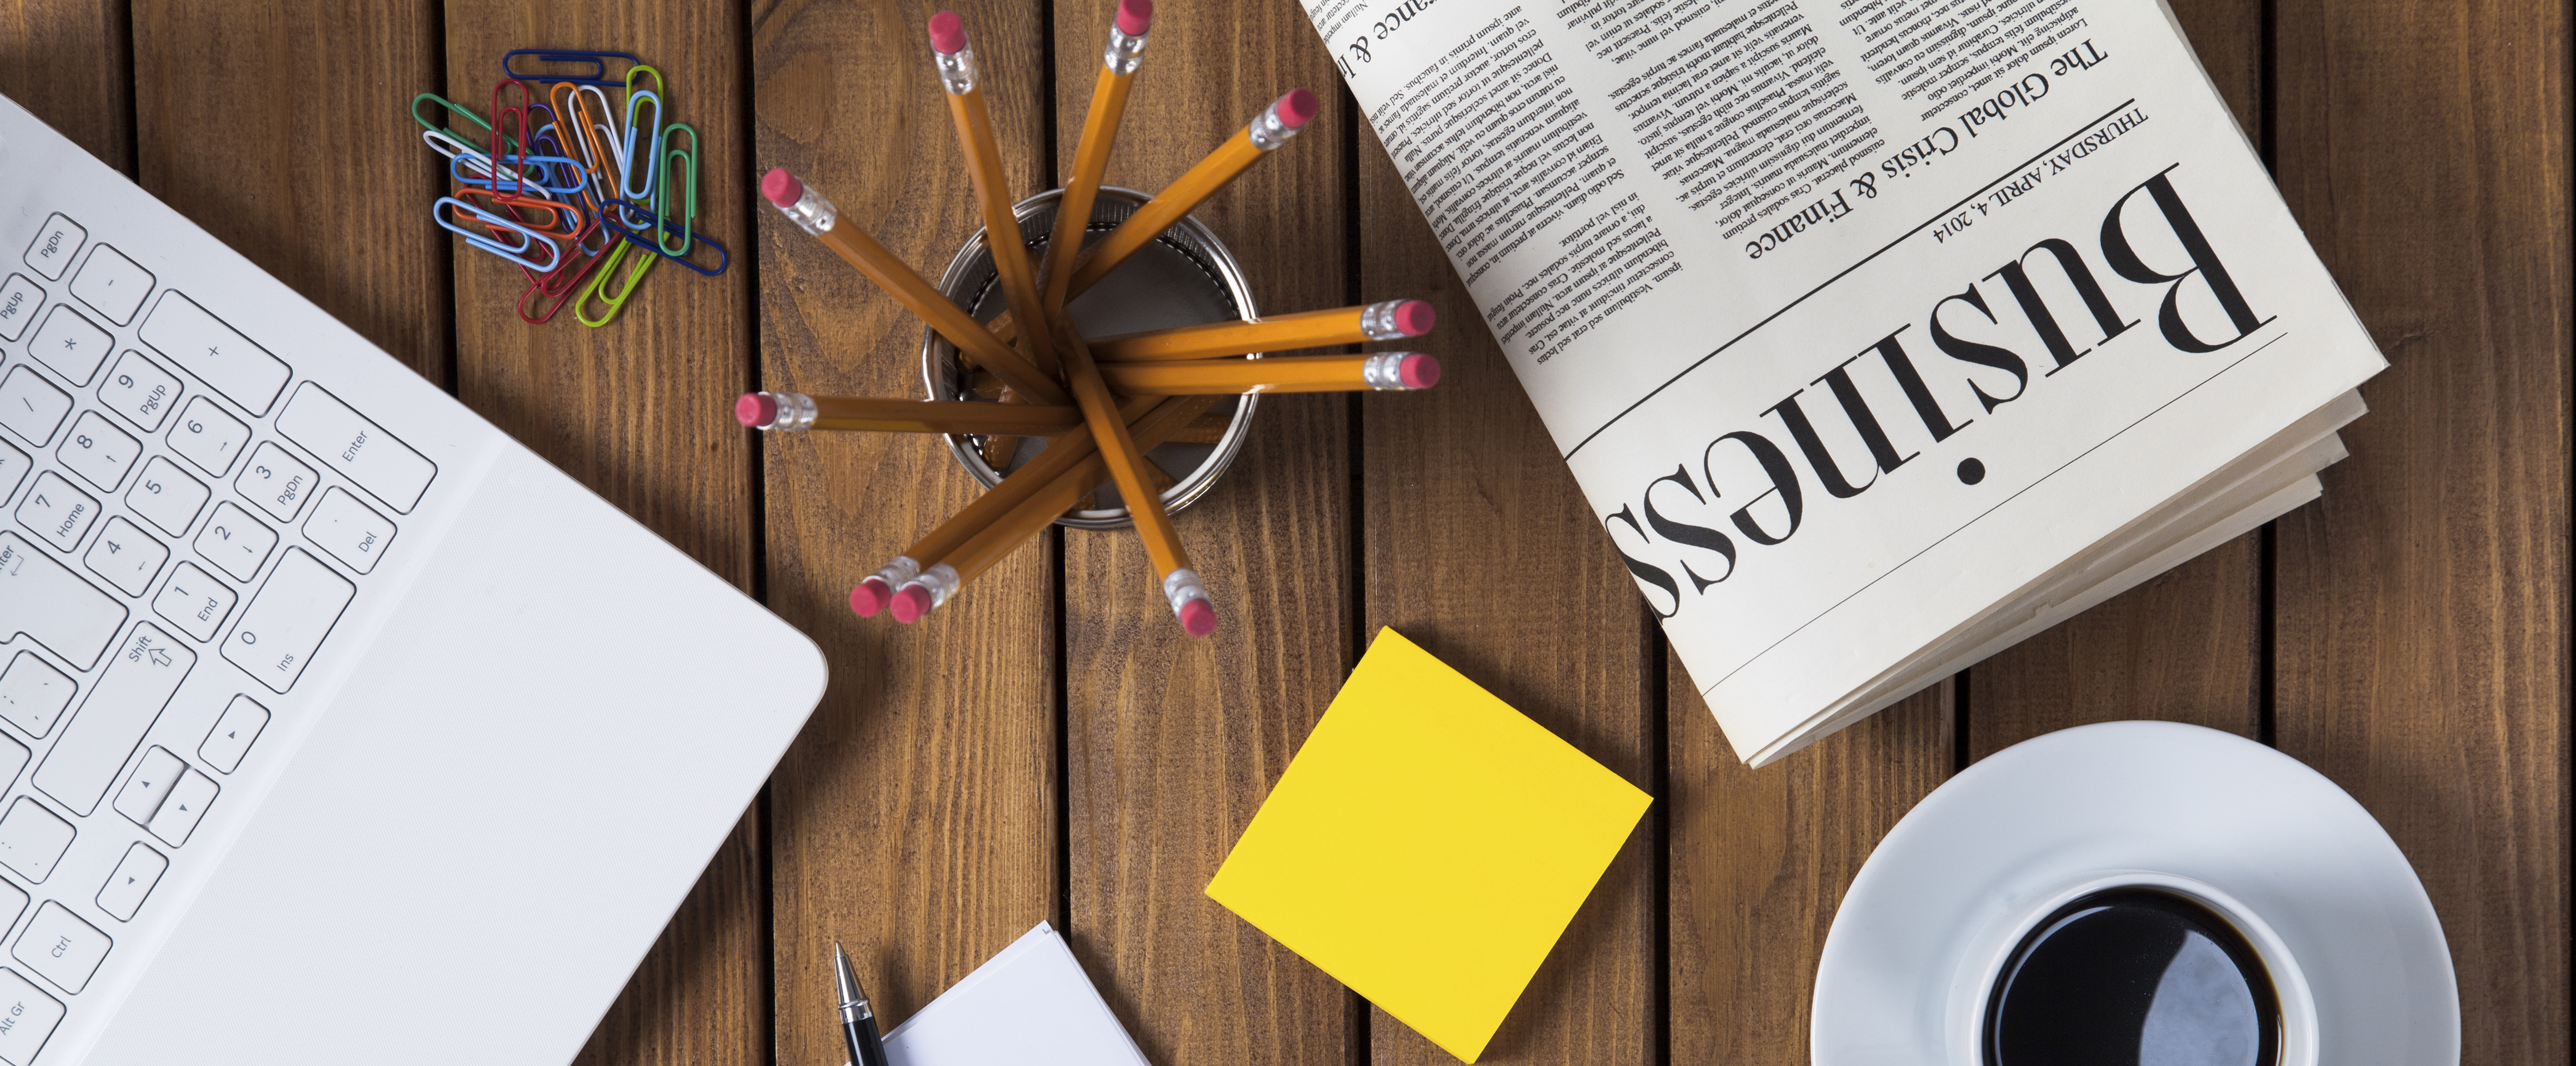 13 Productivity Tips for the Busy Professional [Infographic]